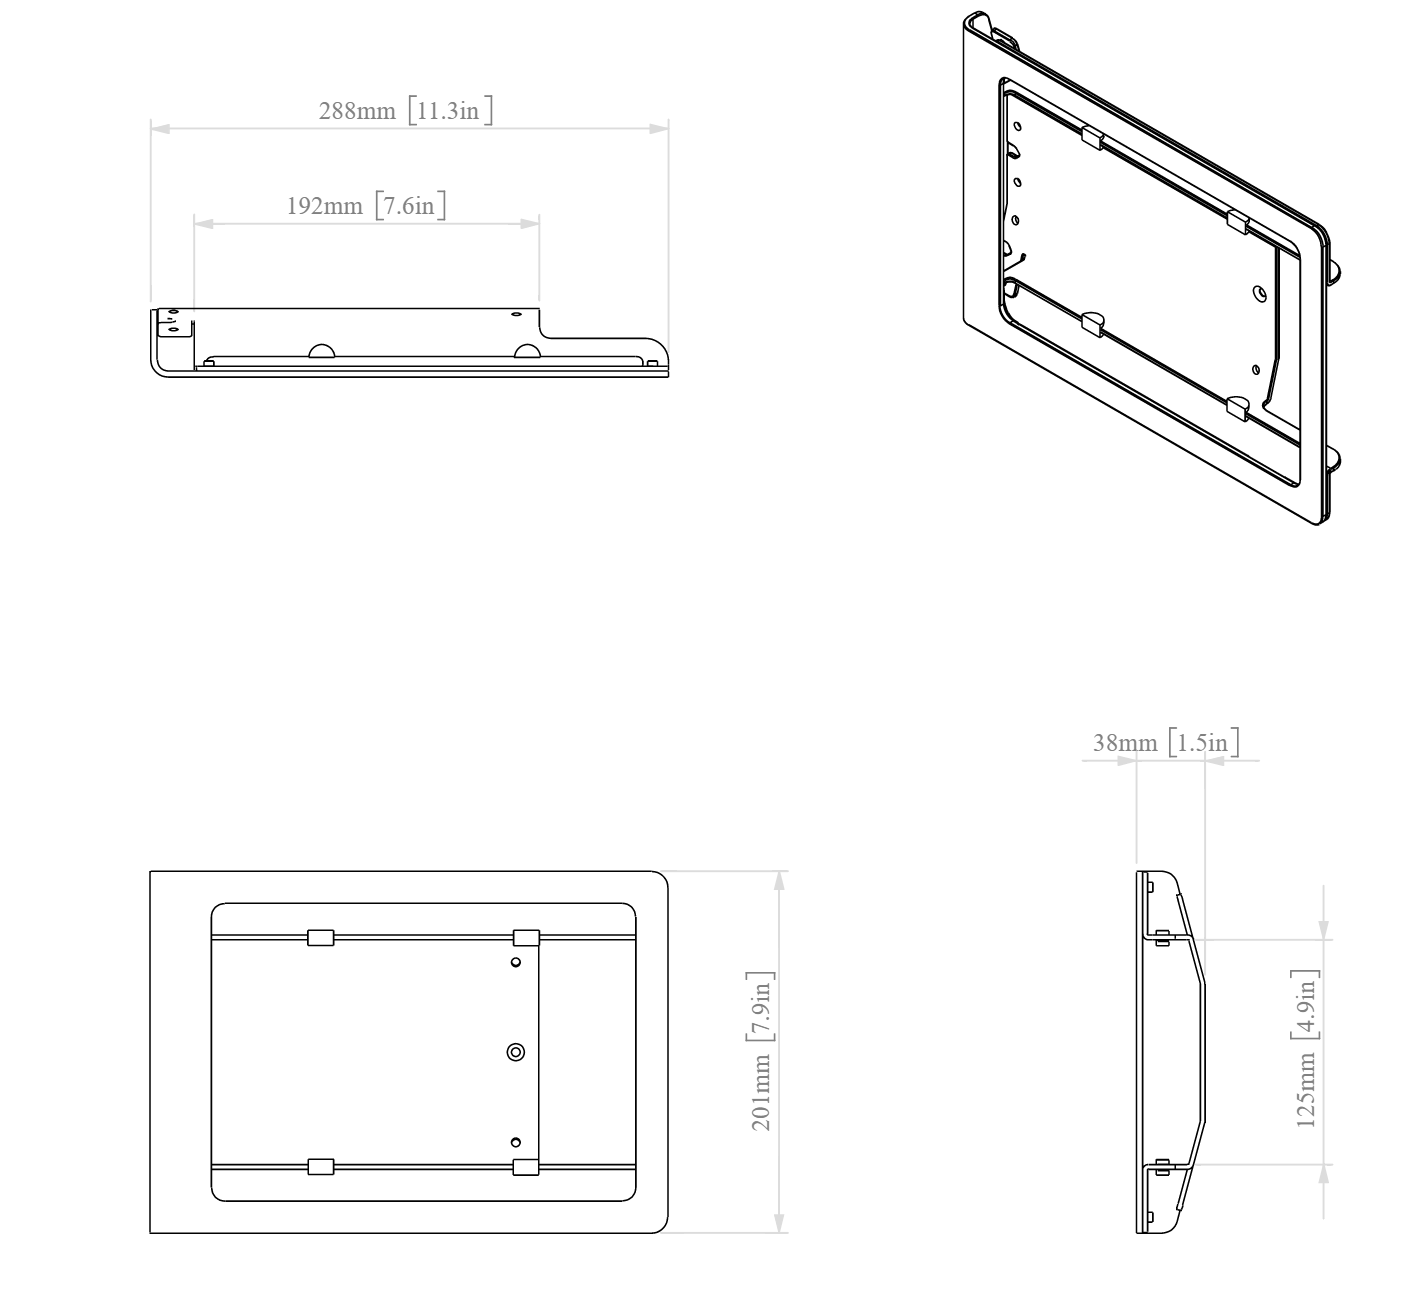 Heckler Windfall Multi Wall Mount for iPad 9.7 dimensions